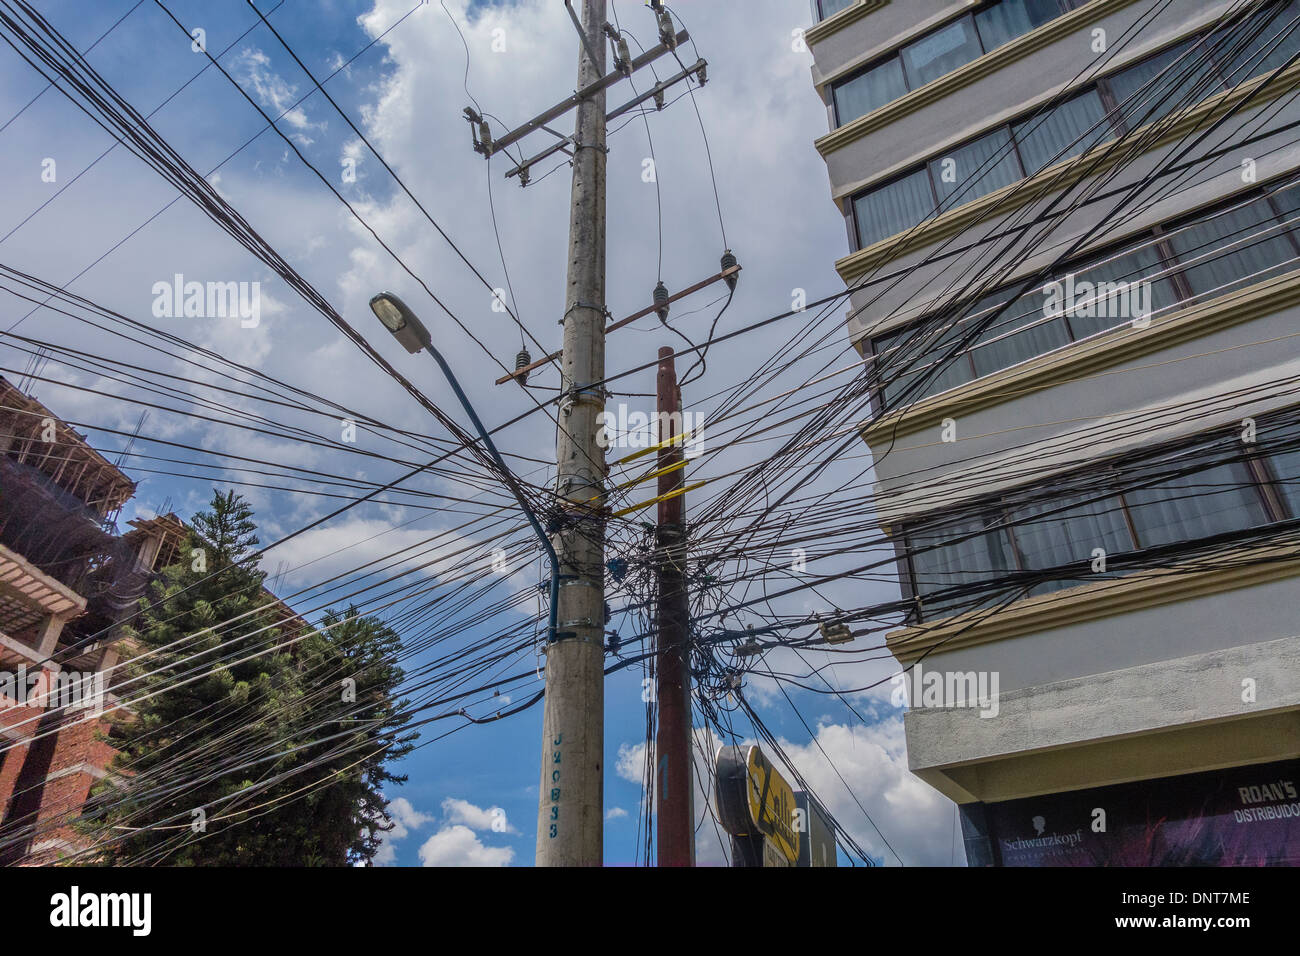 Jumbled Wires Stock Photos Images Alamy Wiring Closet Mess Tangled Electrical And Telephone In Bolivia Causing A Real Complex For Technicians Working On